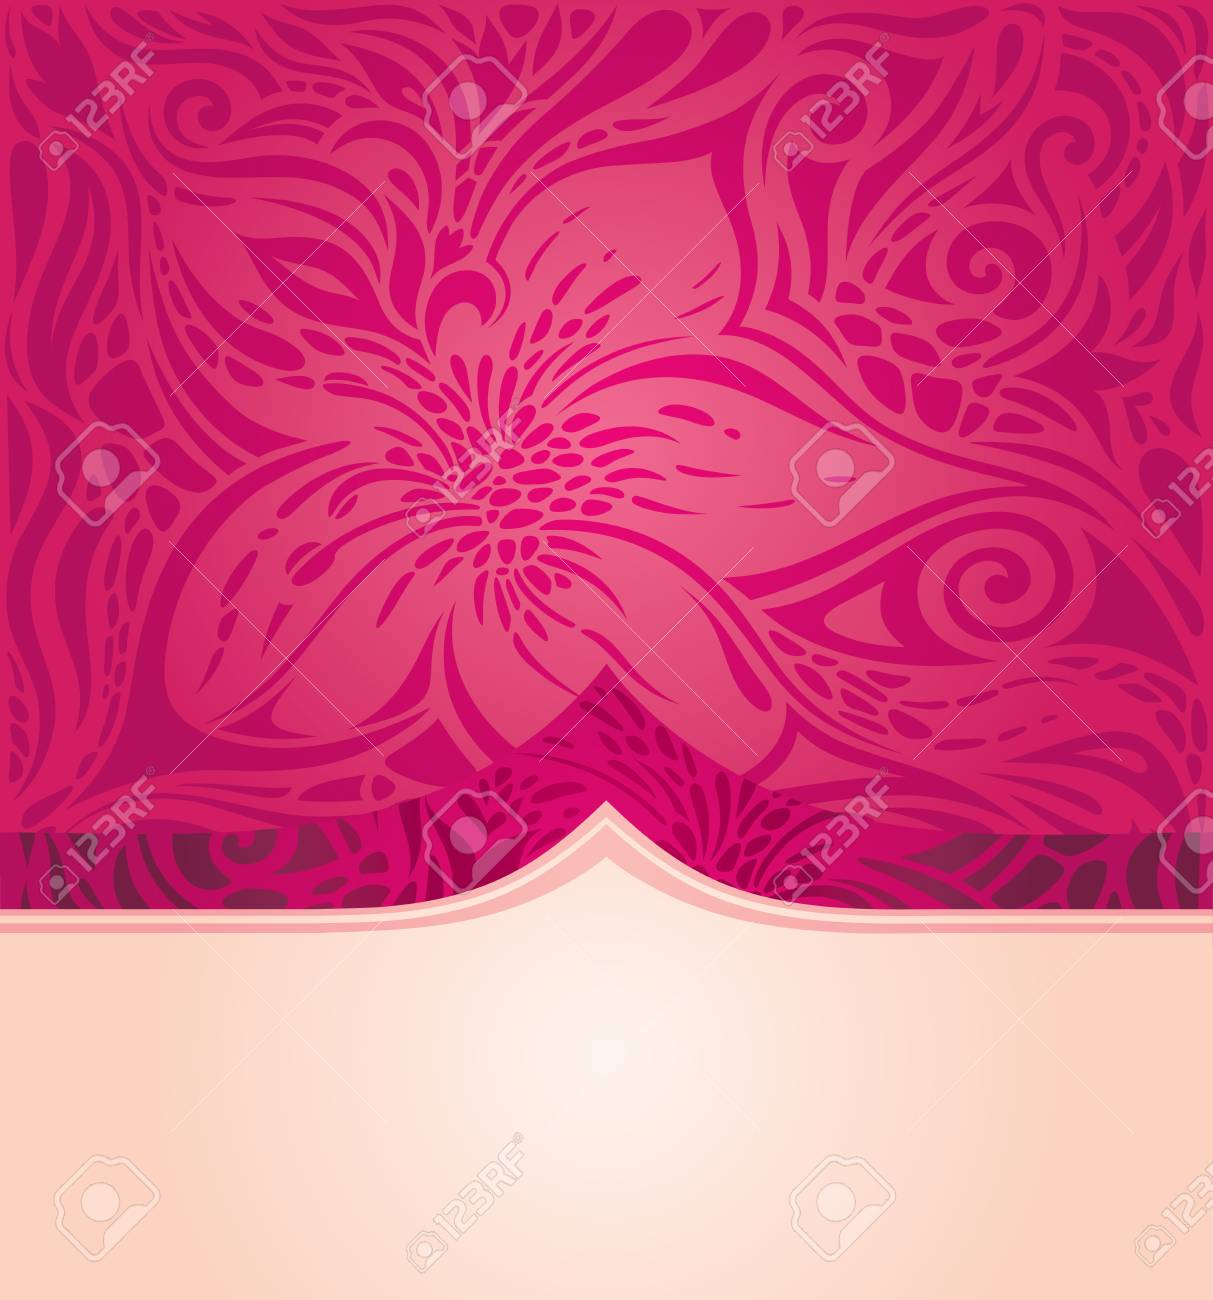 Red Floral Vector Pattern Wallpaper Background Trendy Fashion Design With Copy Space Stock